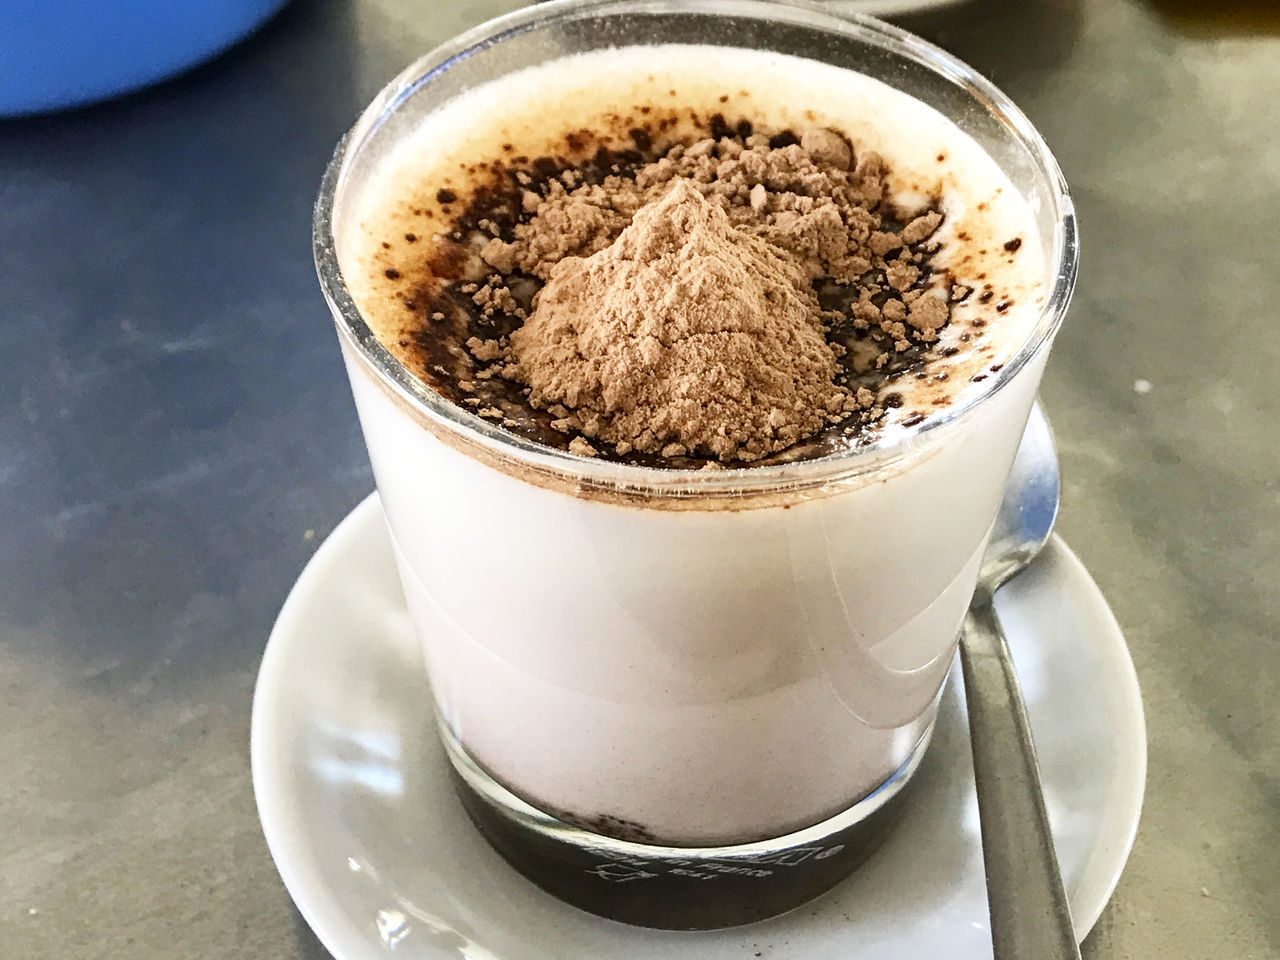 Breakfast Cacao Close-up Cocoa Coffee - Drink Coffee Time Colacao Cup Day Dessert Dessert Time! Desserts Drink Drinks Food Food And Drink Food And Drink Freshness Frothy Drink Indoors  Milk No People Refreshment Sweet Drink Sweet Food Visual Feast